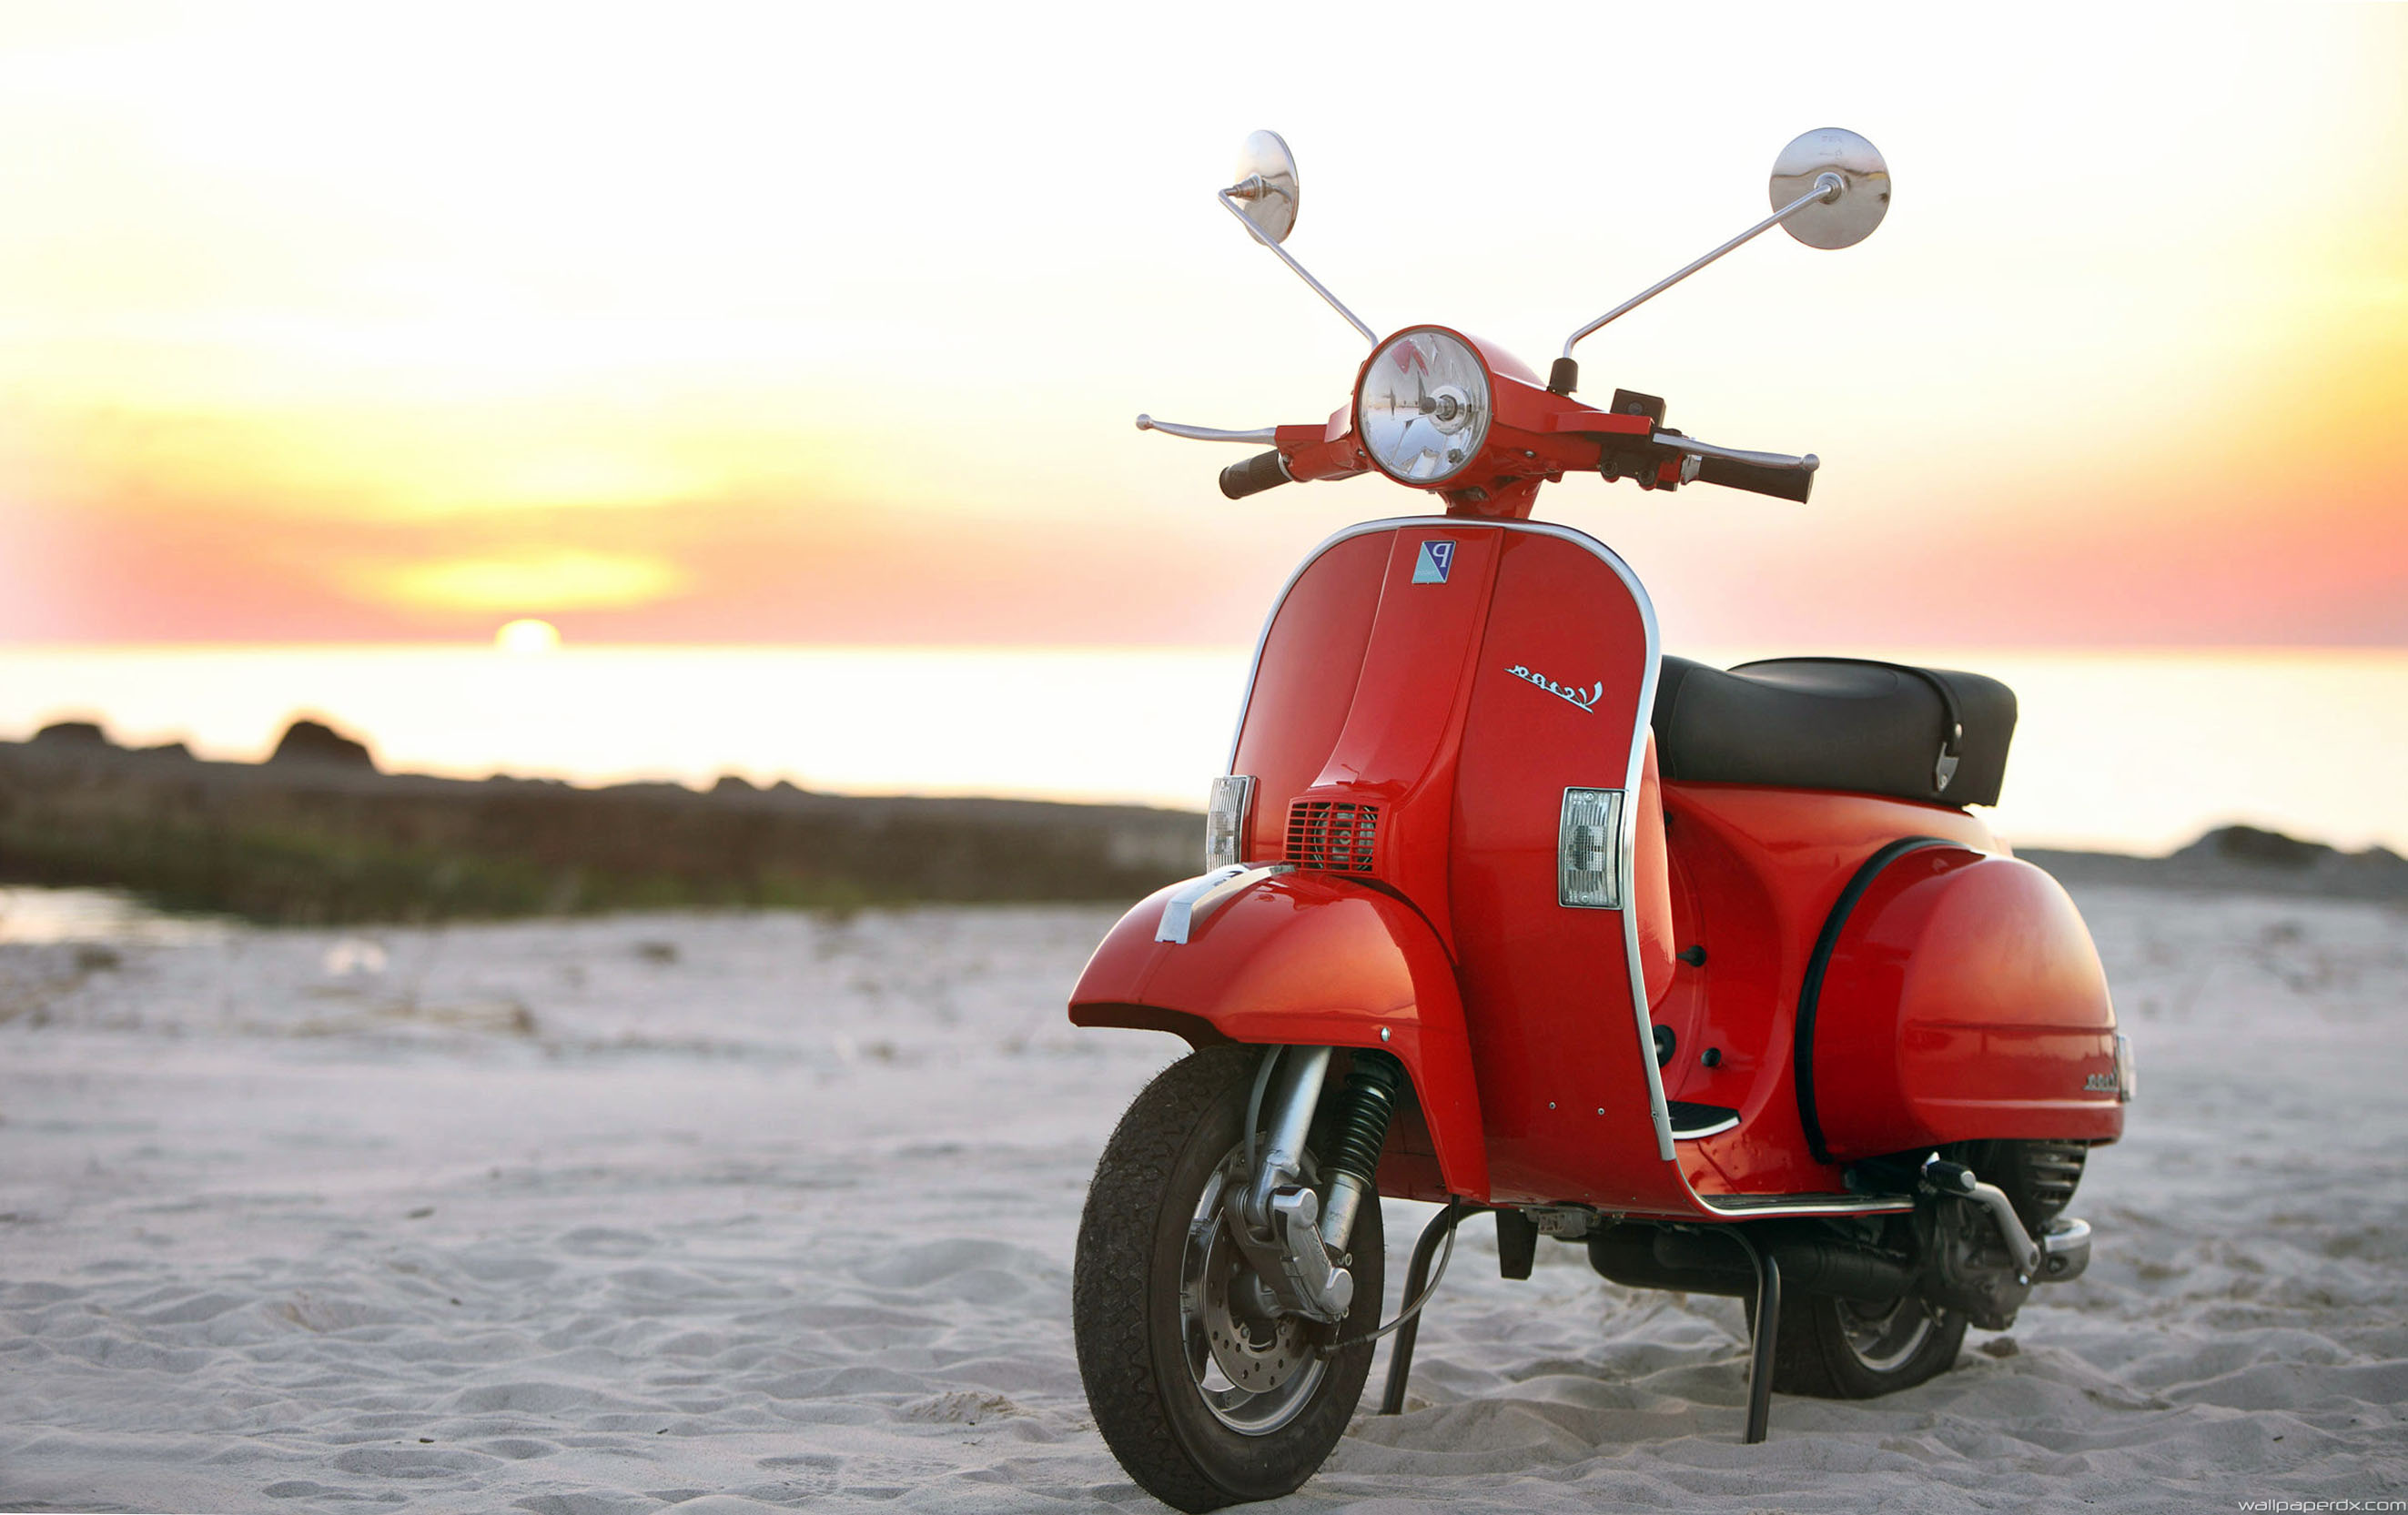 Vespa Hd Wallpapers Pictures to pin 2646x1665